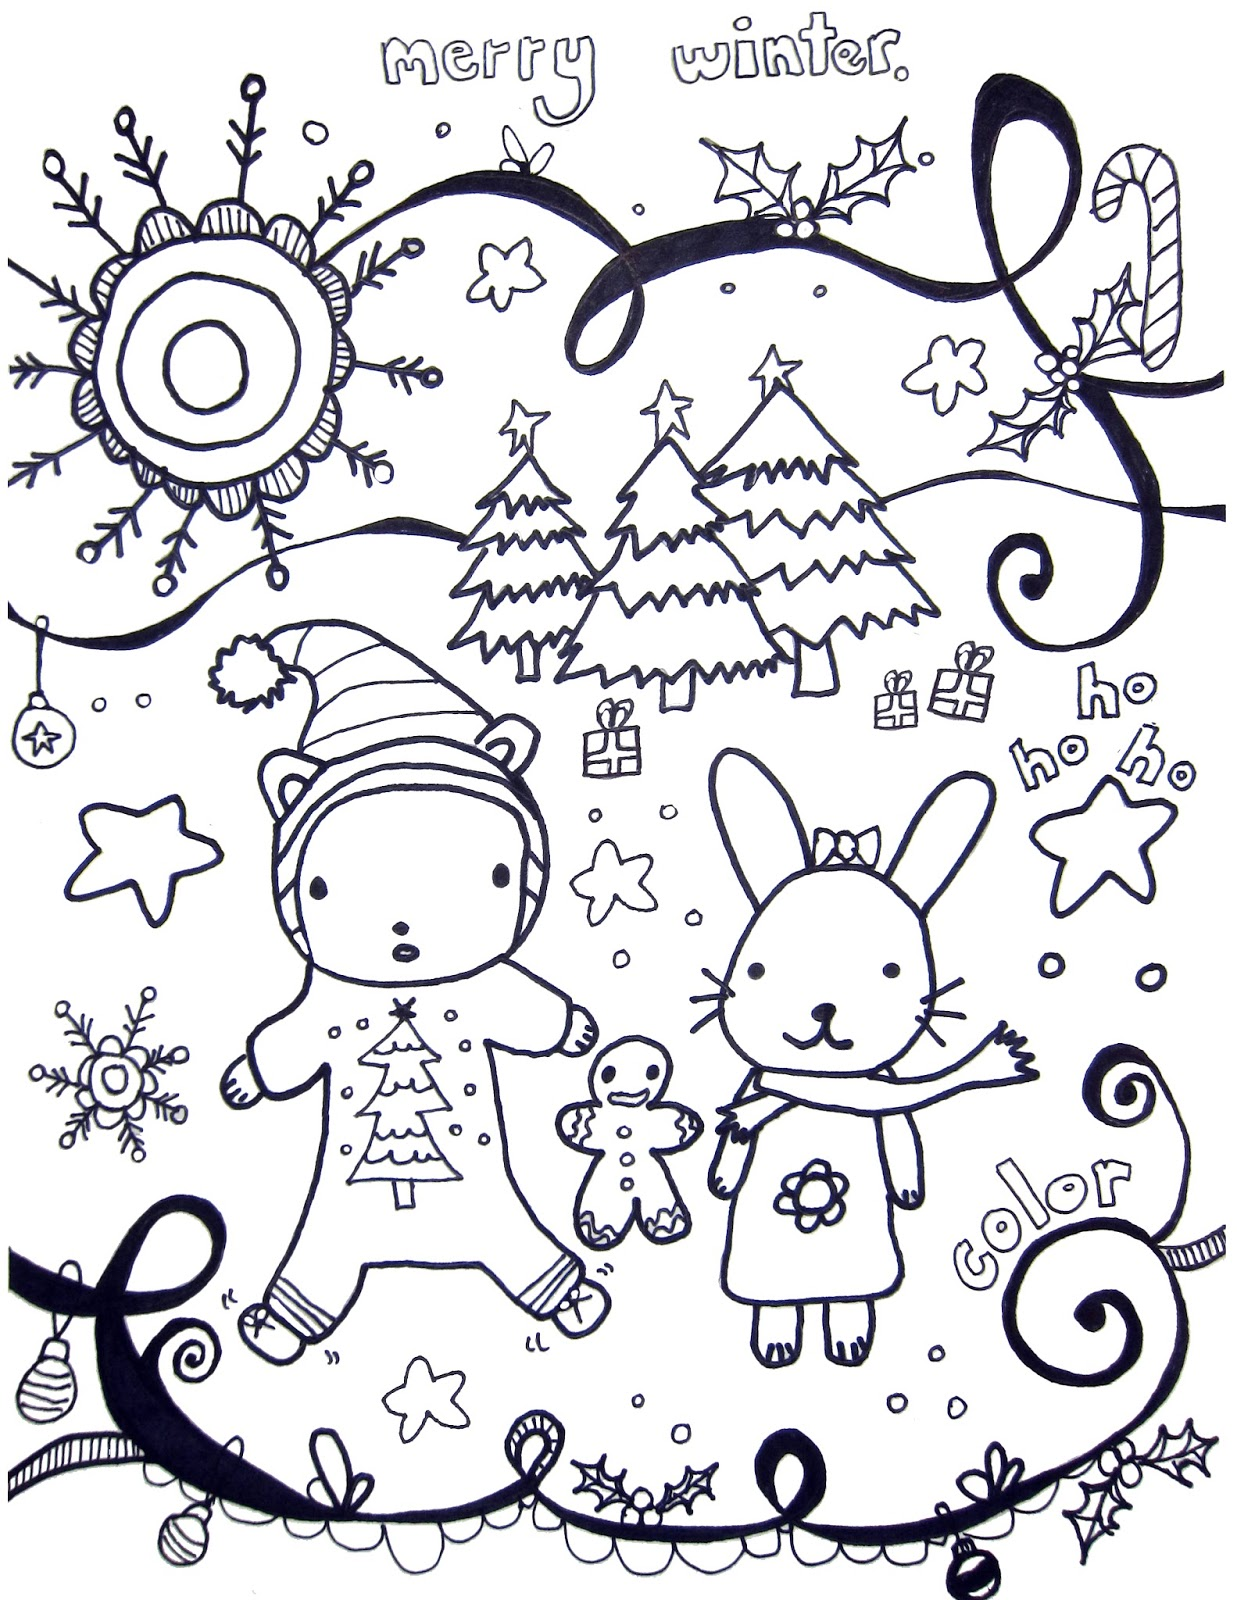 Winter pages to color - Happy Winter I Made A Coloring Sheet To Celebrate The Season Feel Free To Print And Color If You Do Use This Send Me A Pic So I Can See Your Finished